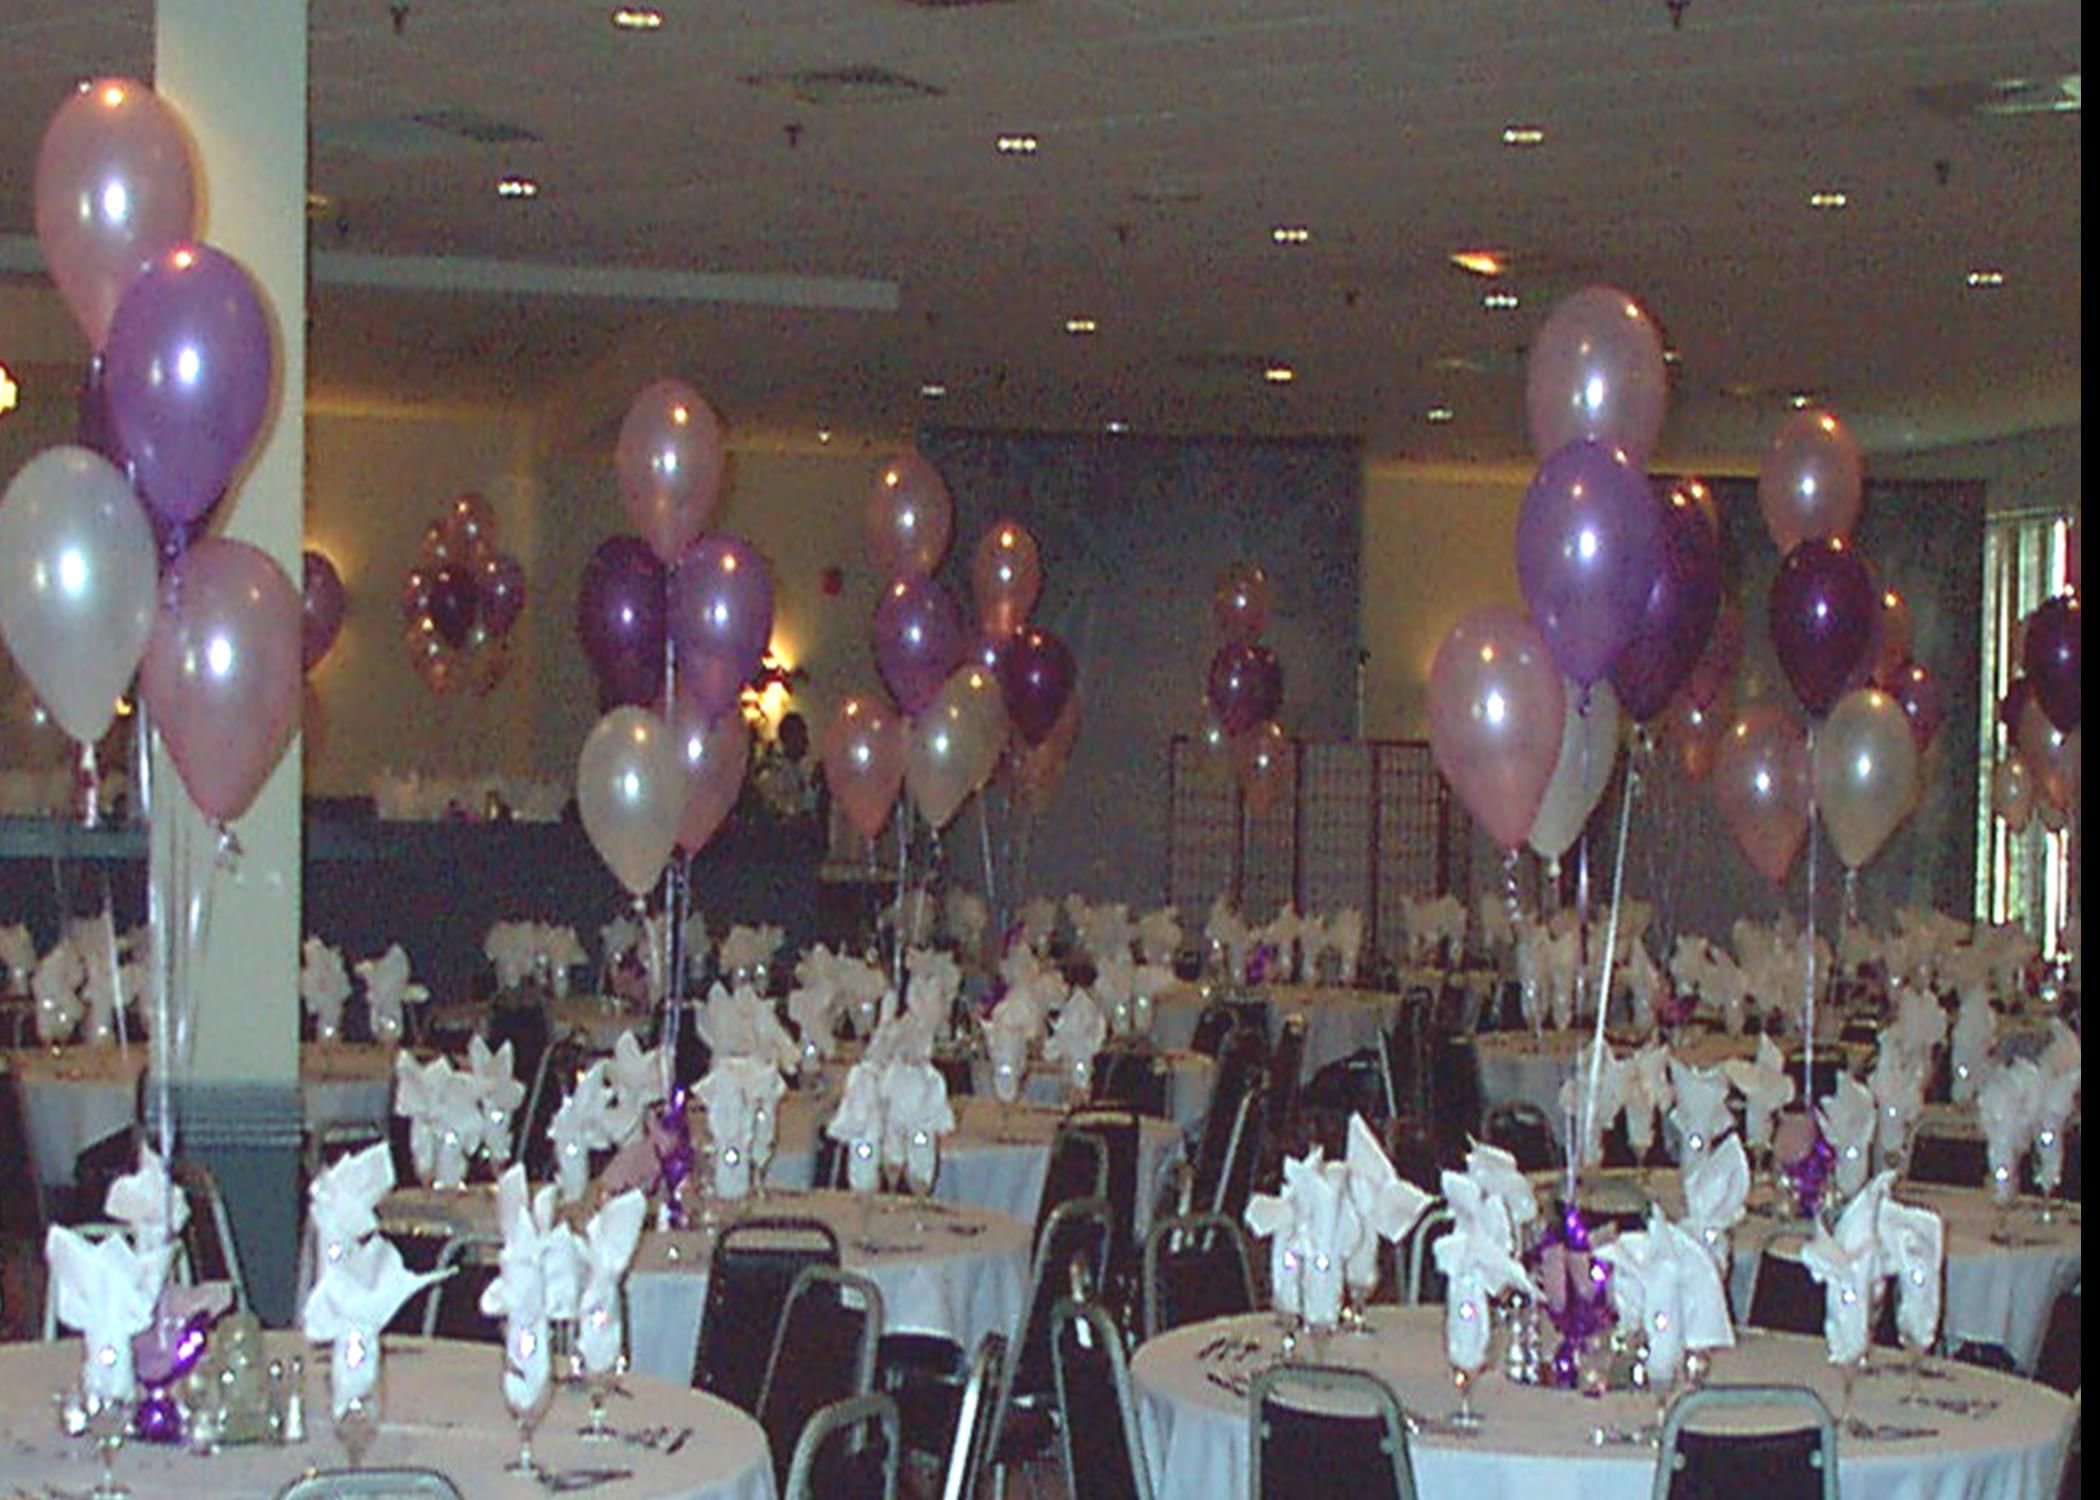 Balloon Decoration Ideas For Quinceaneras Of Quincea Era Balloon Decor Decoration Delivery Balloons